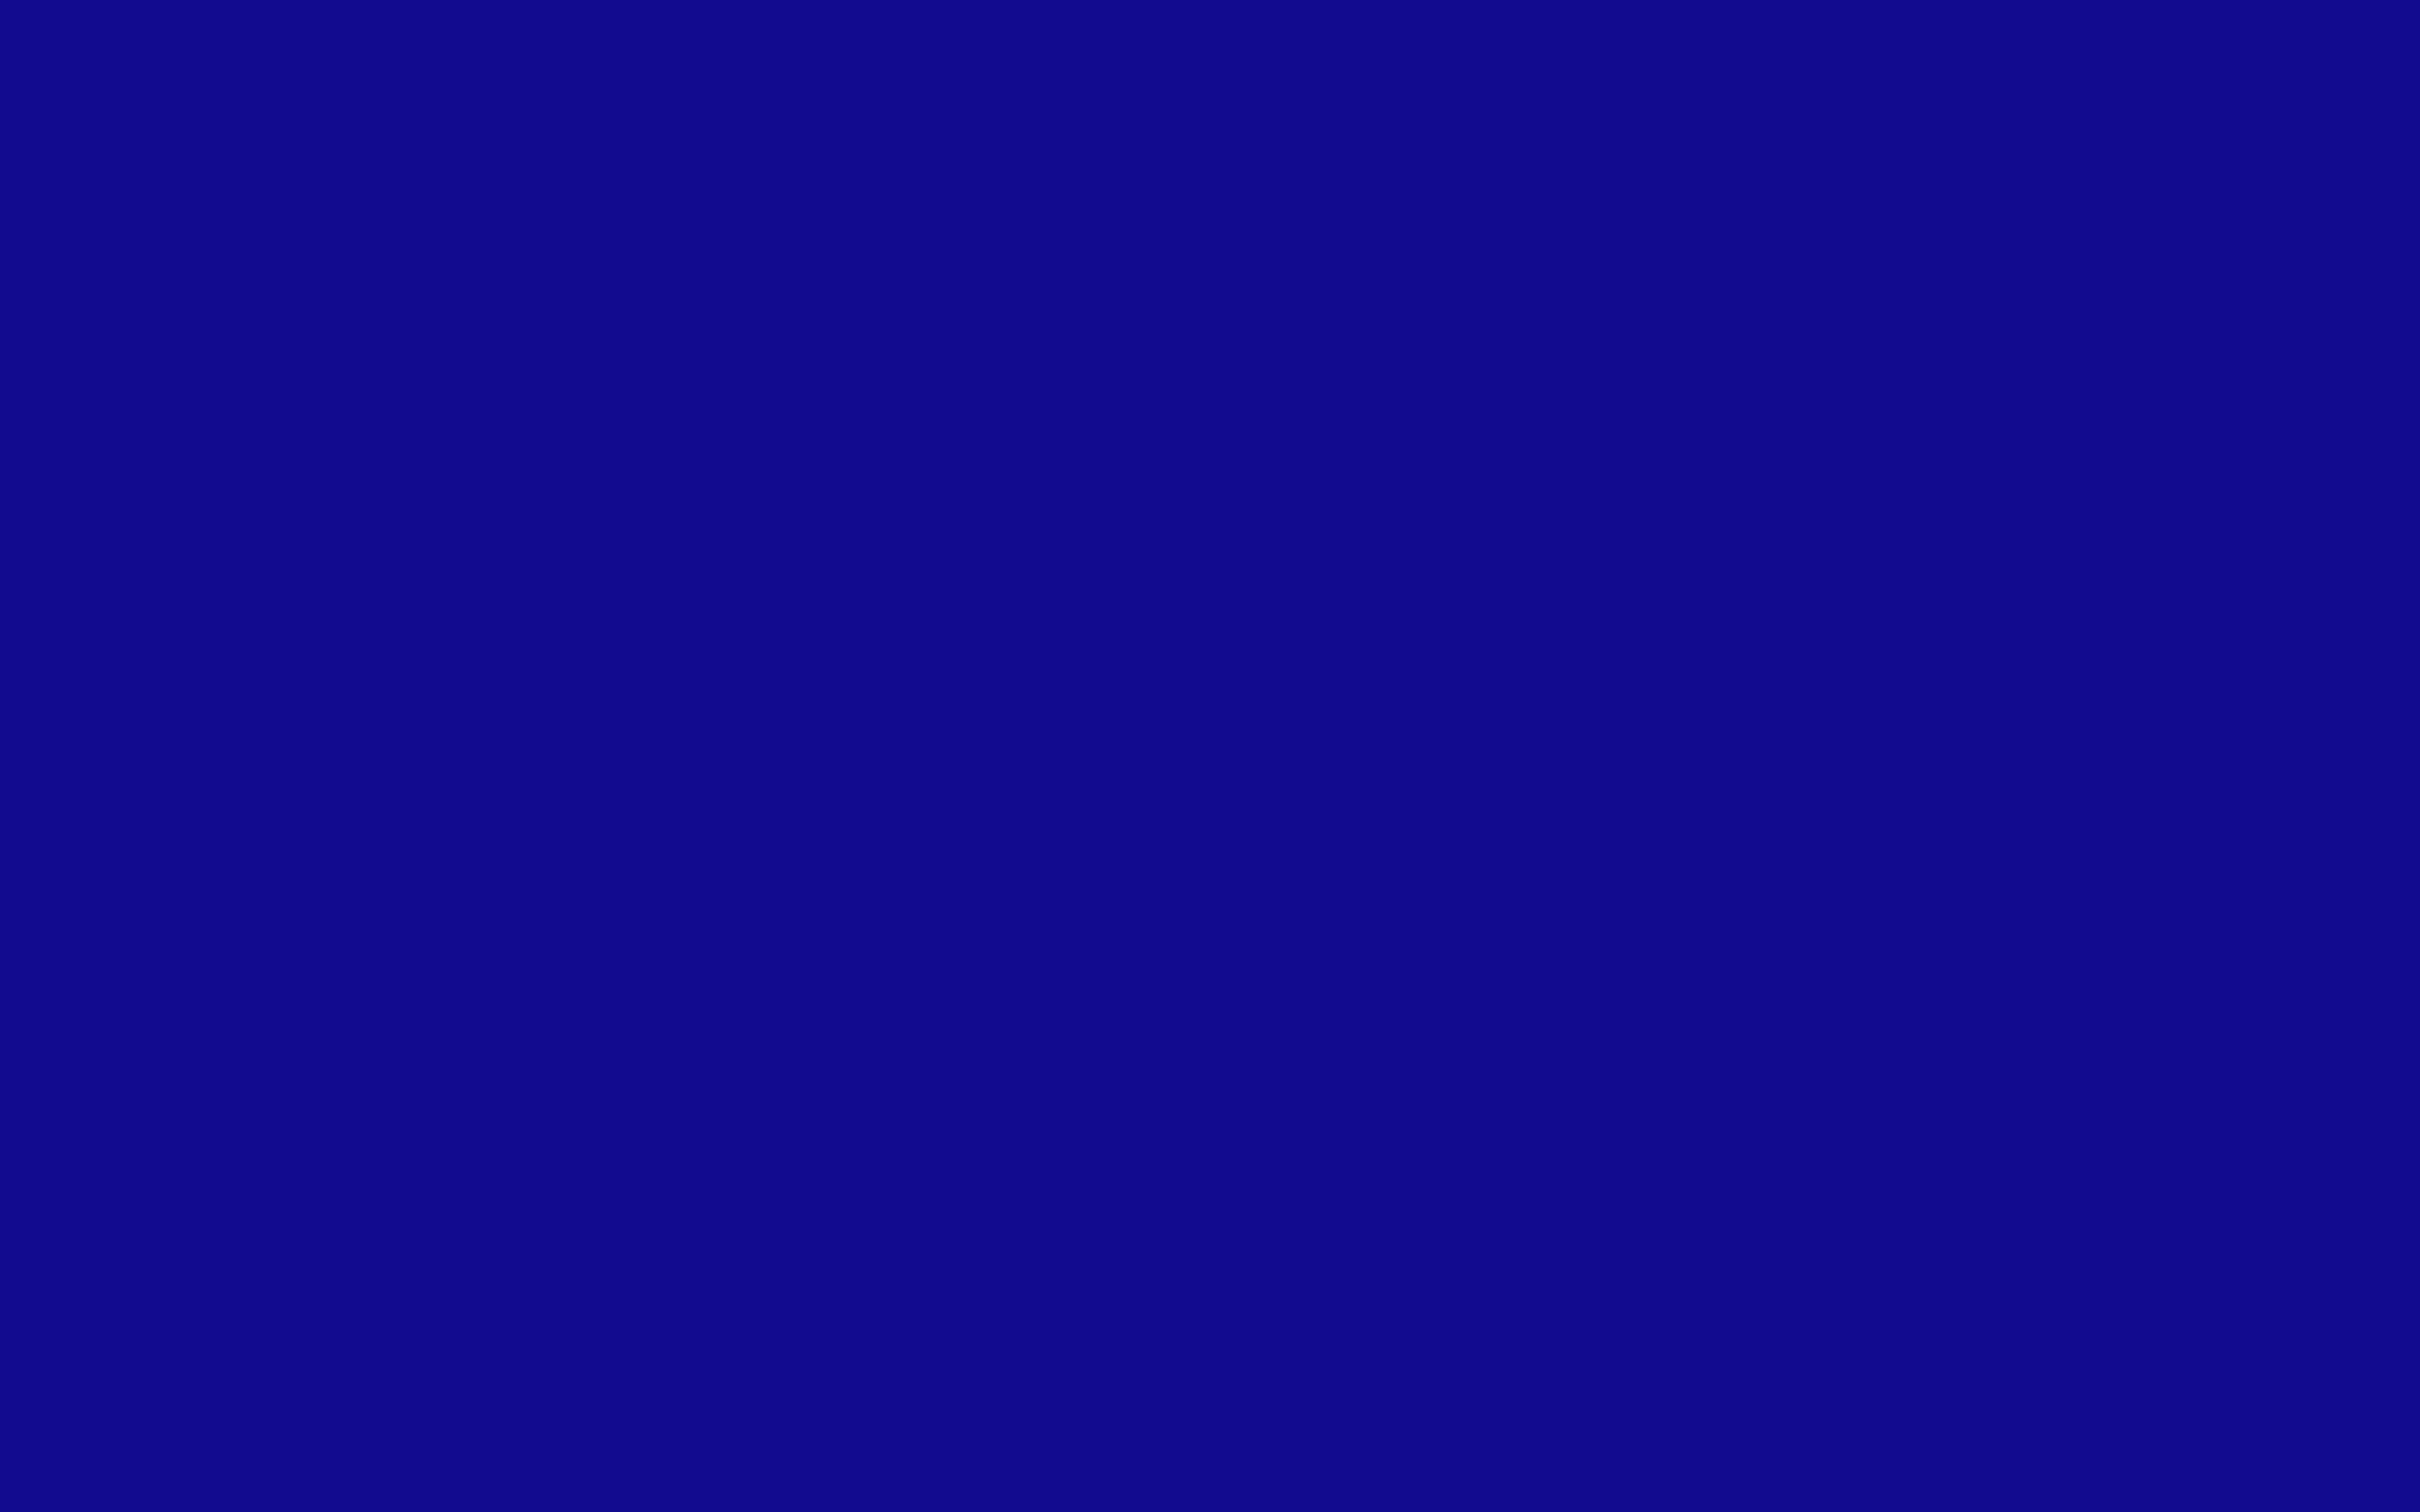 2560x1600 Ultramarine Solid Color Background